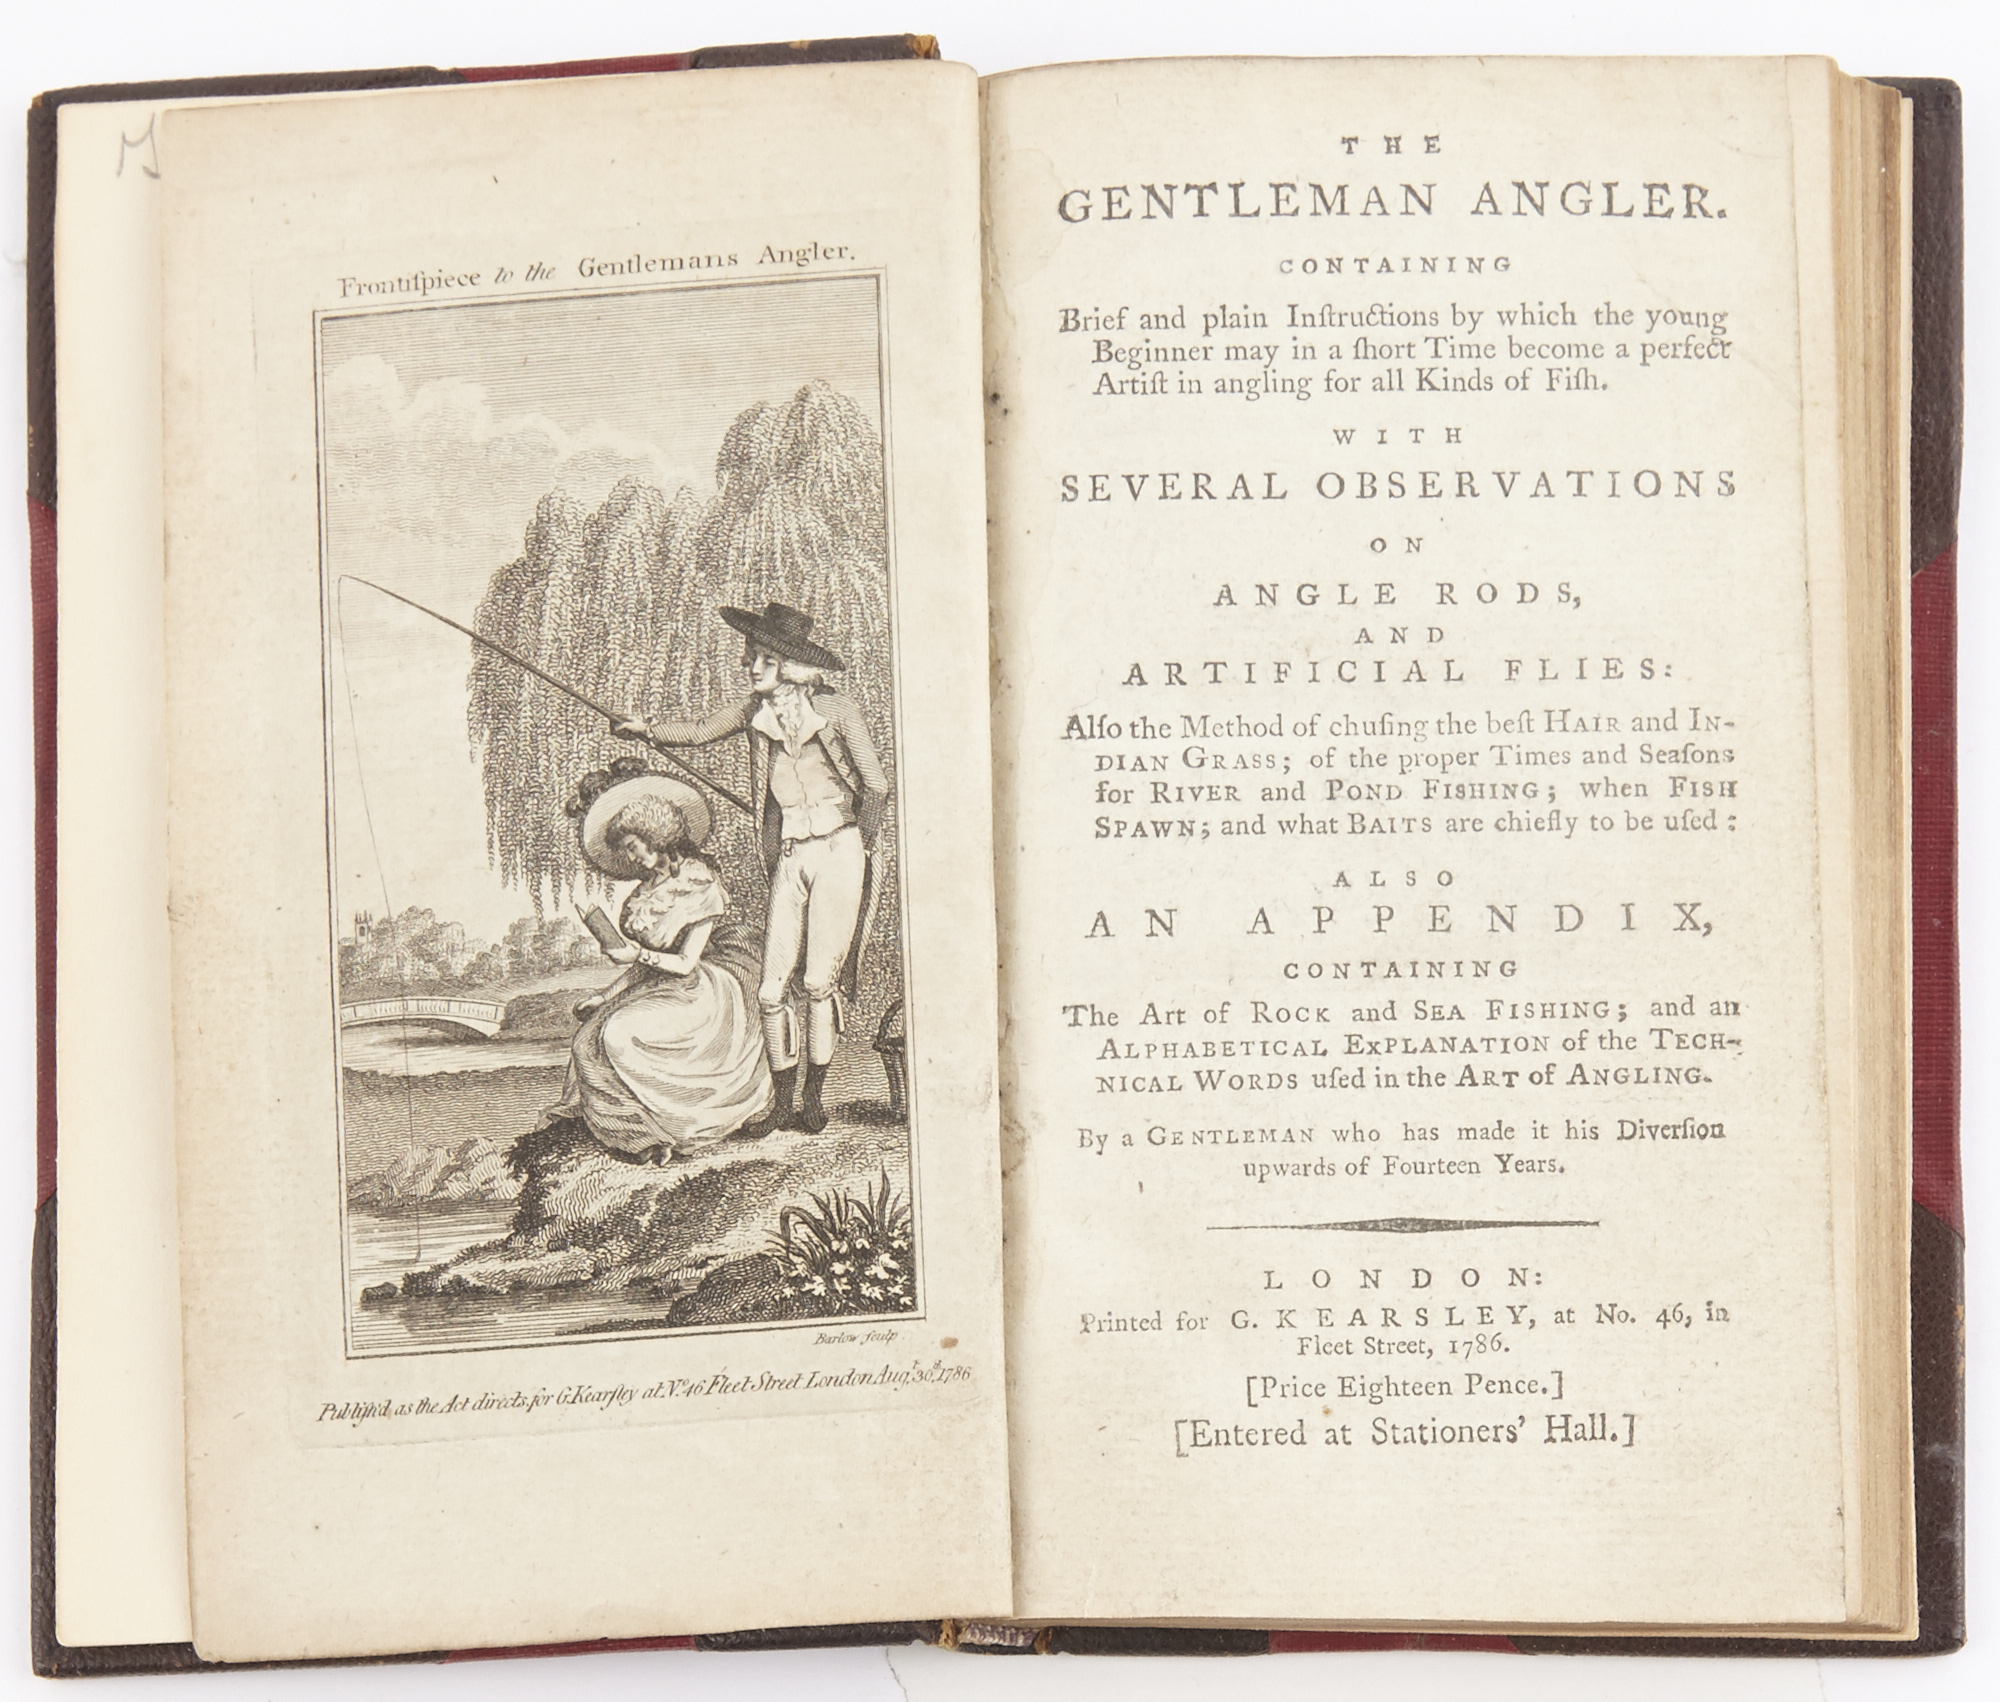 Lot image - [ANON]  The gentleman angler. Containing brief and plain instructions  by which the young beginner may in a short time become a perfect artist in angling for all Kinds of Fish...